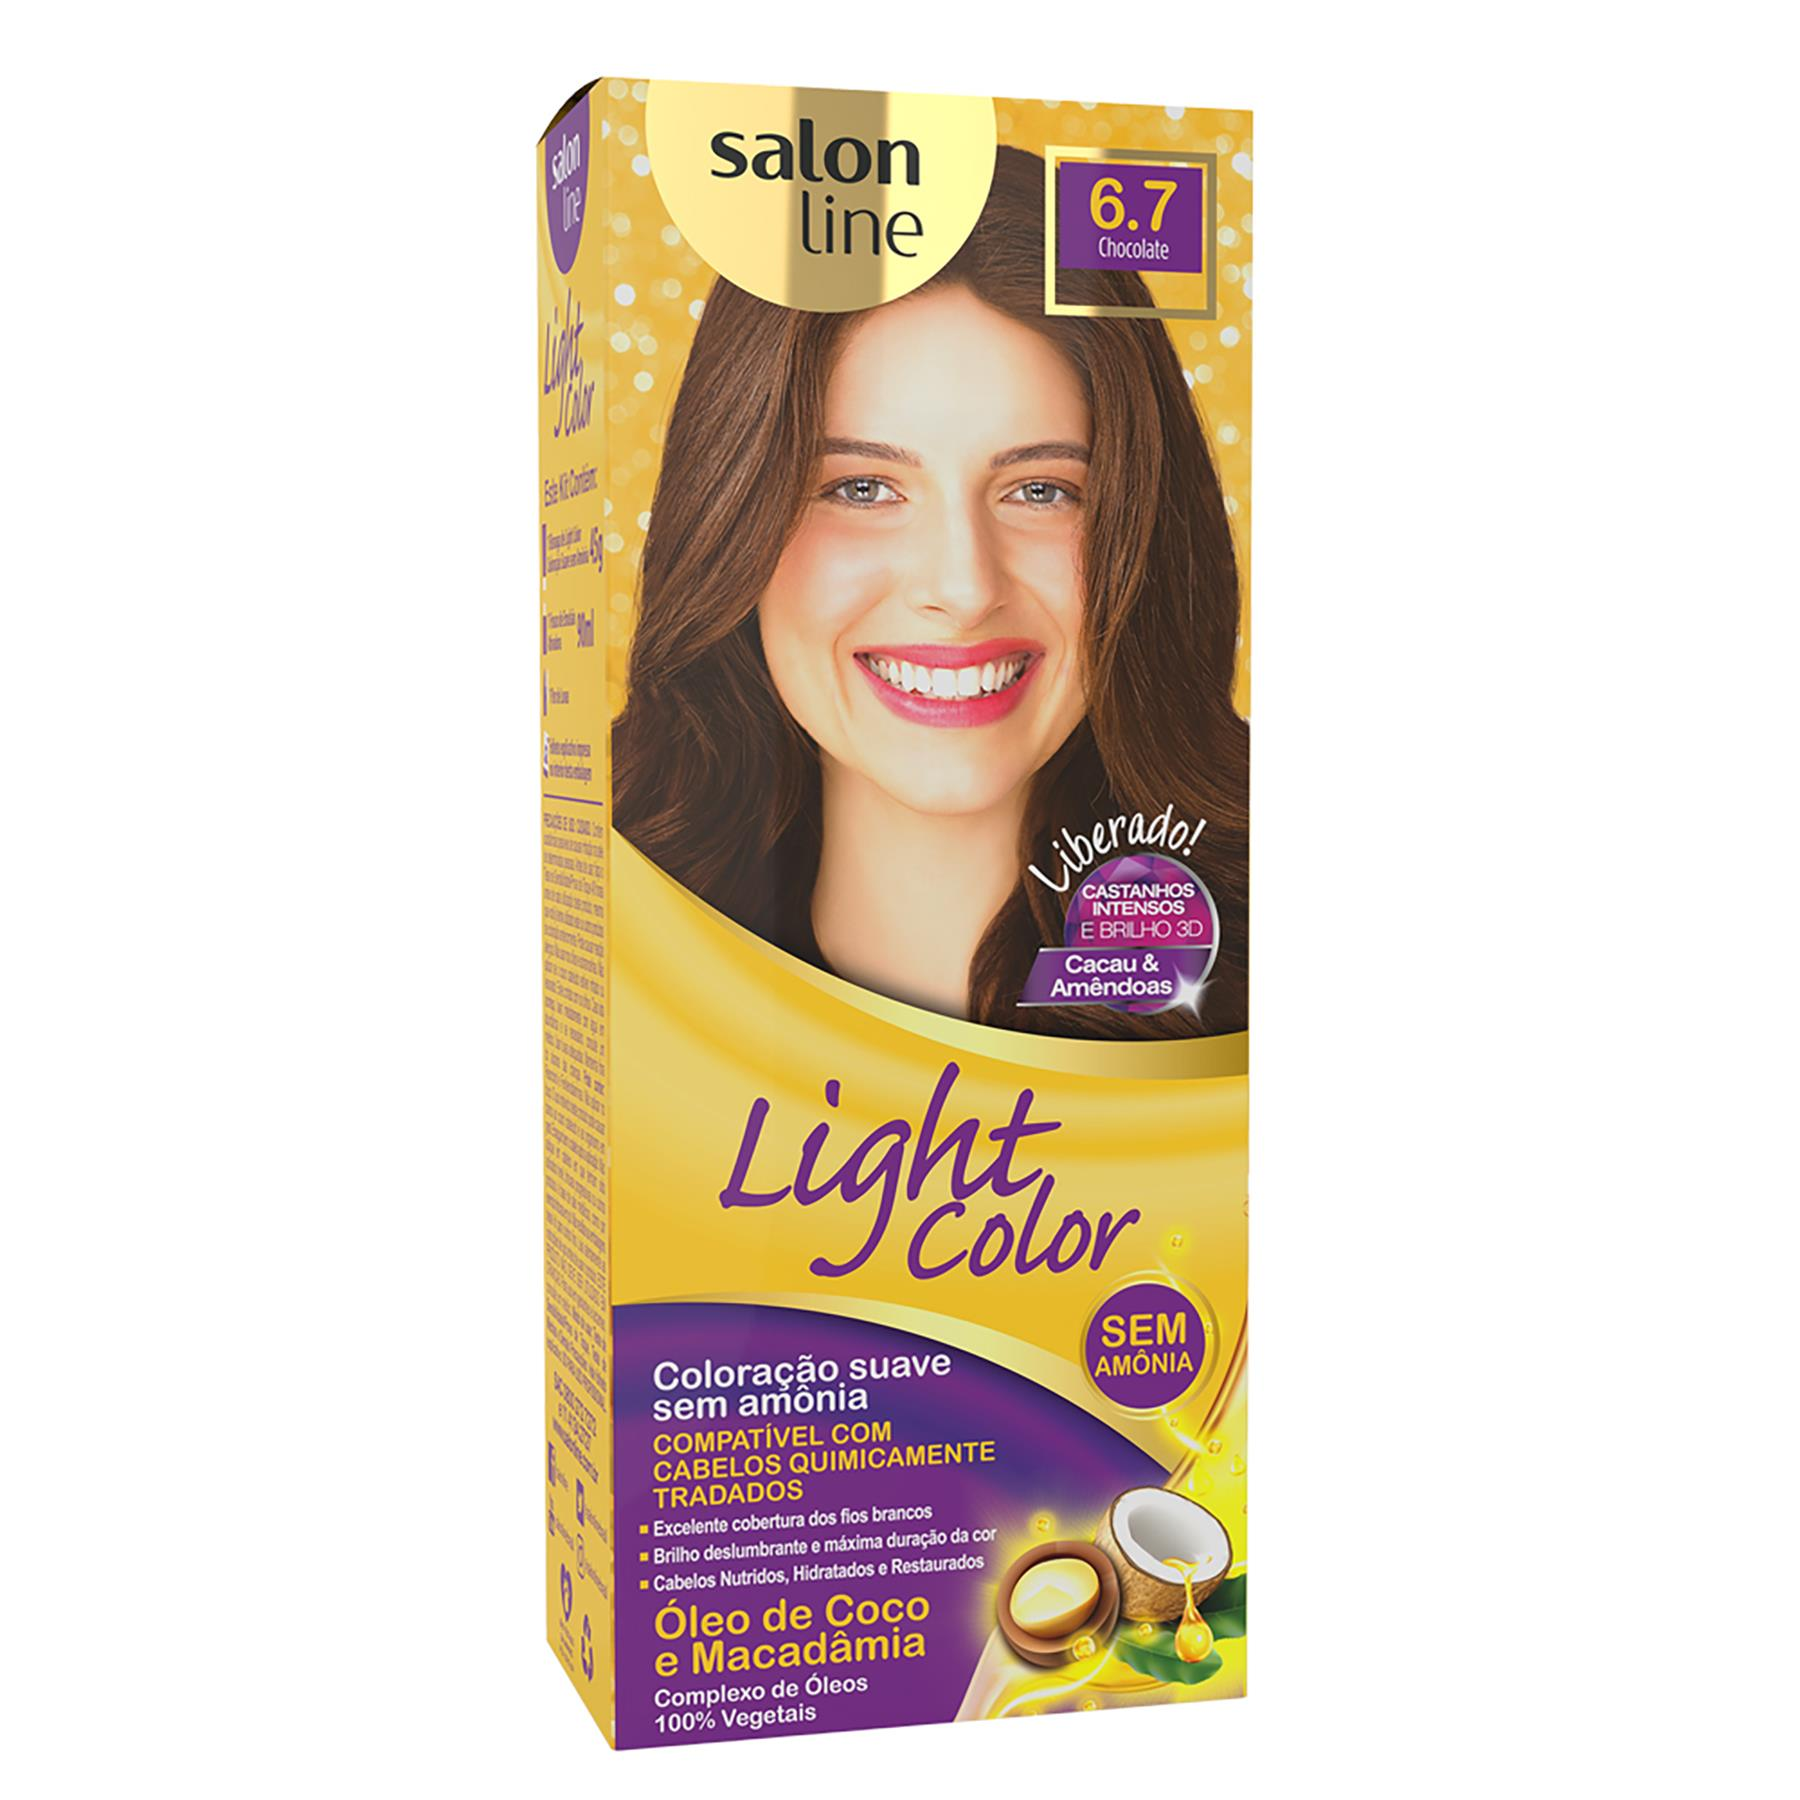 COLORAÇÃO CHOCOLATE 6.7 - LIGHT COLOR SALON LINE